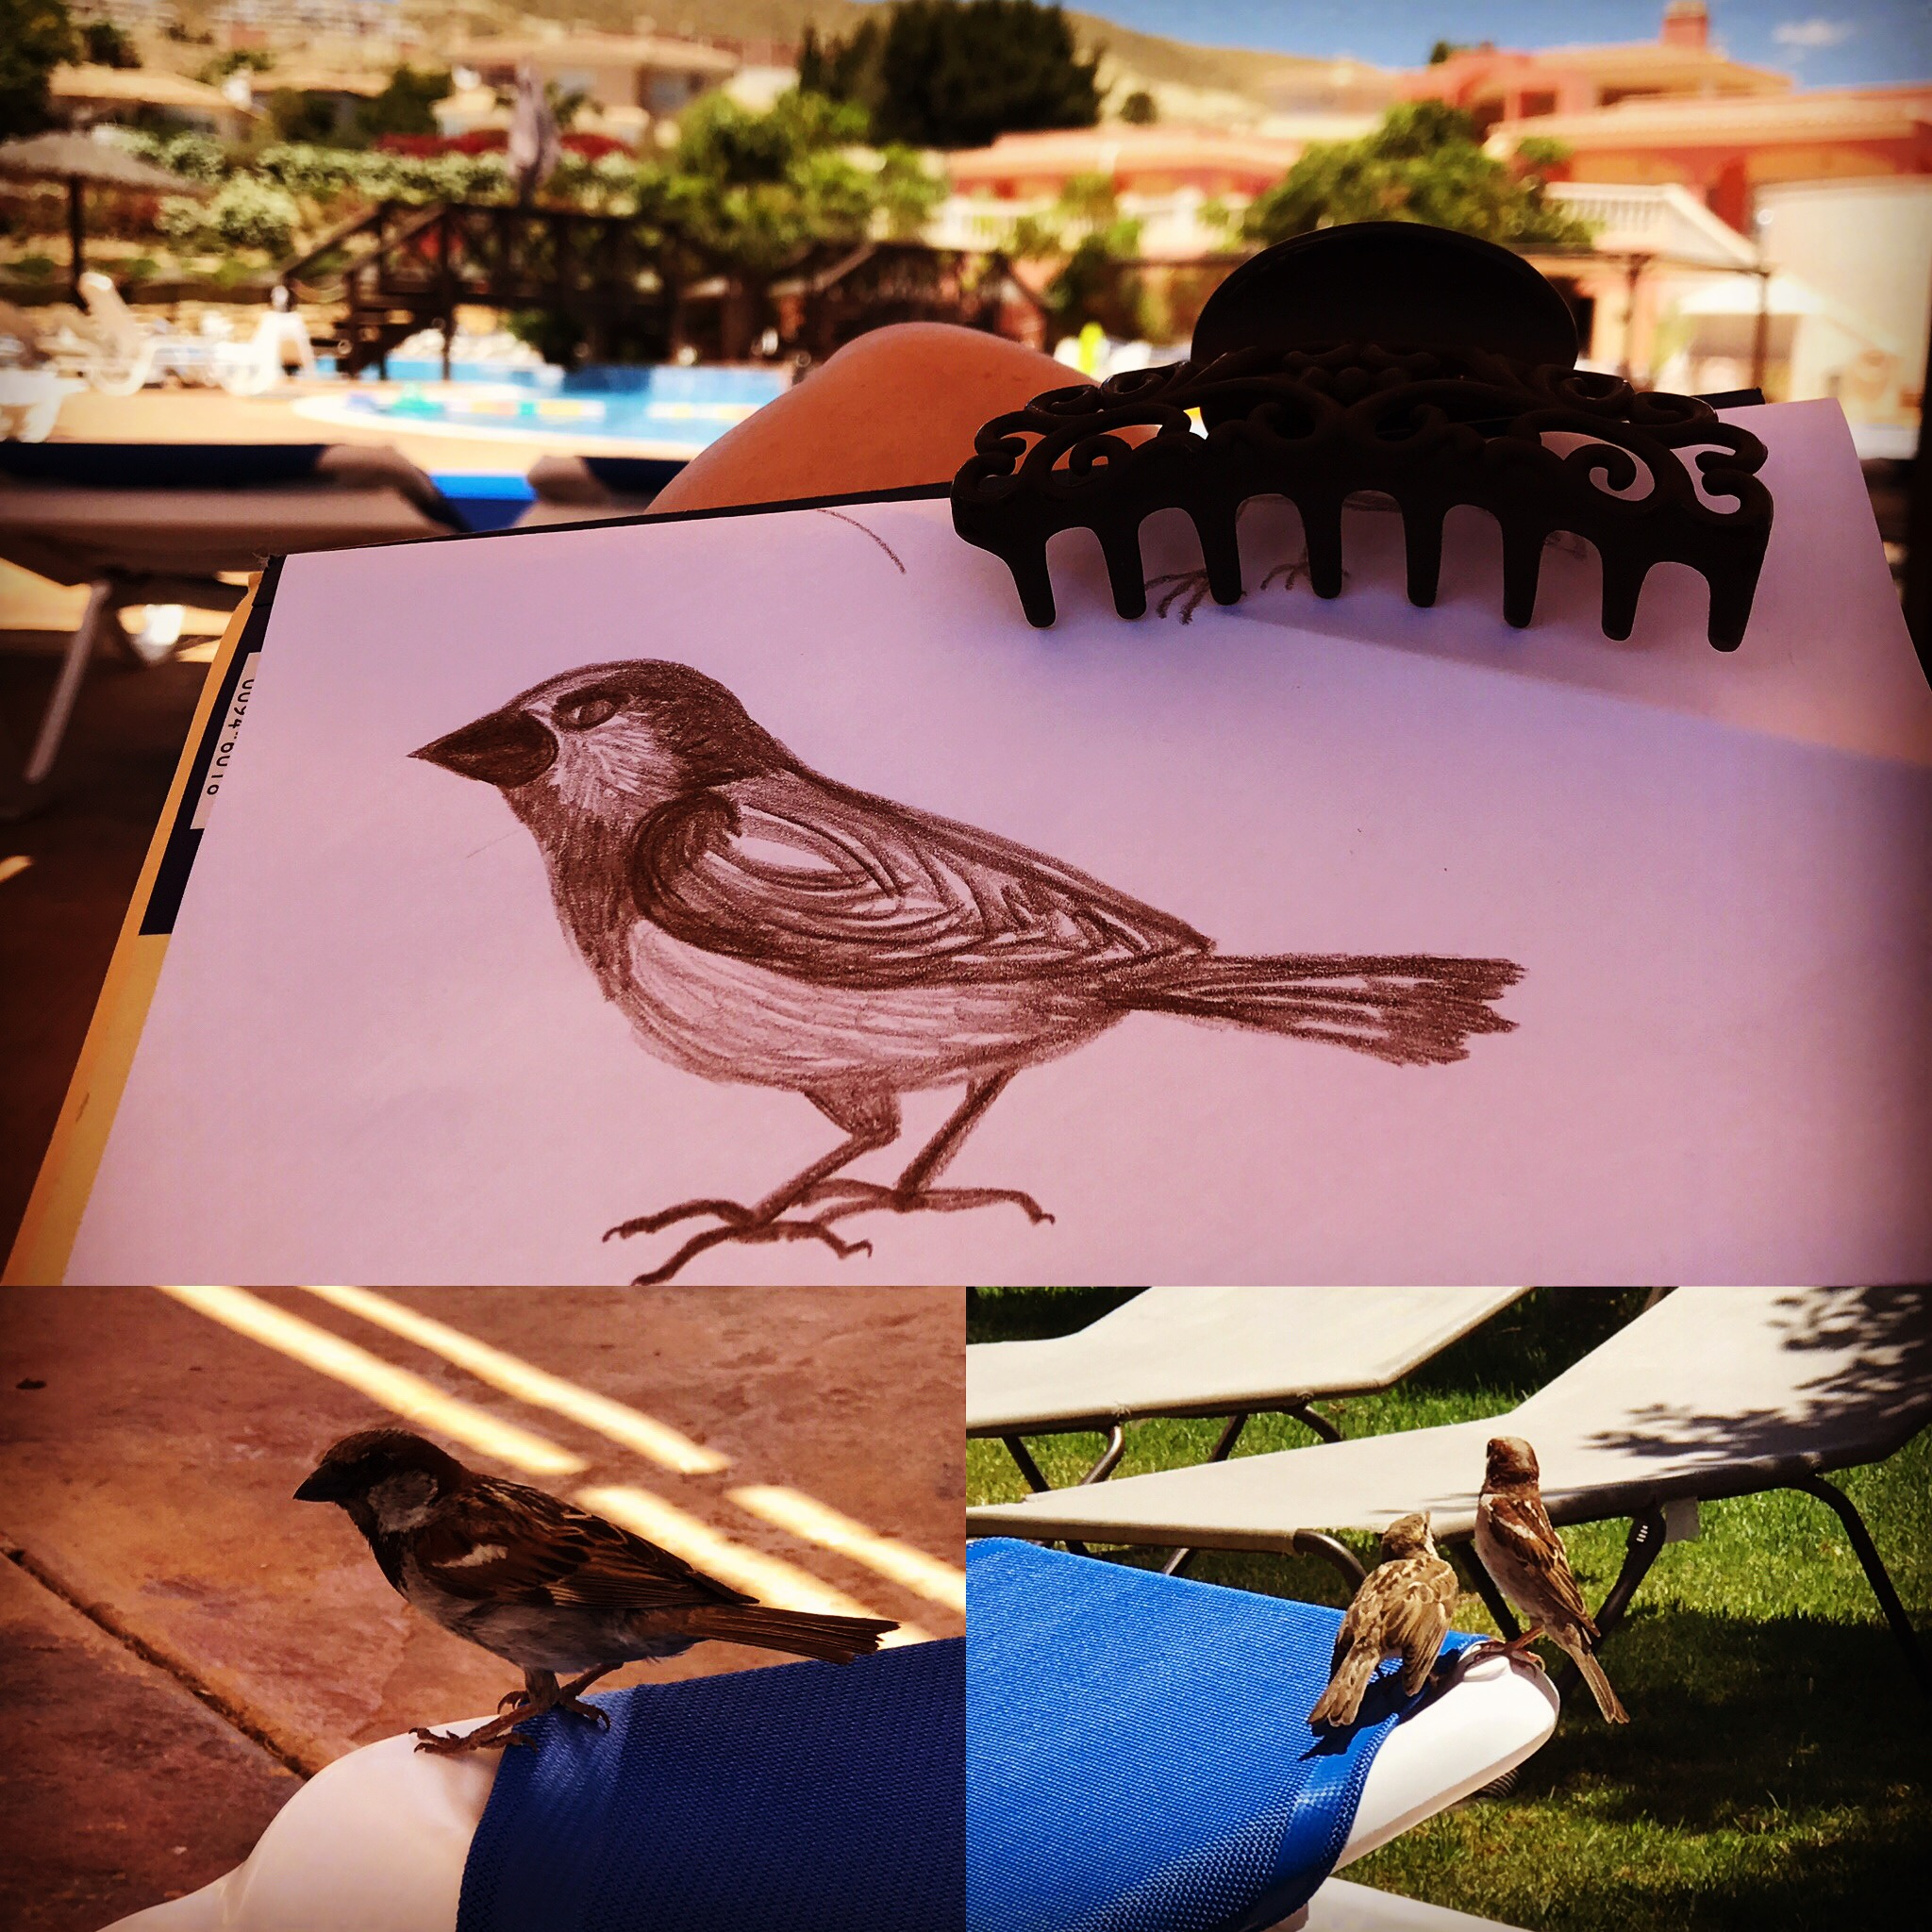 SarahJayne Art Finch by the Pool Alicante